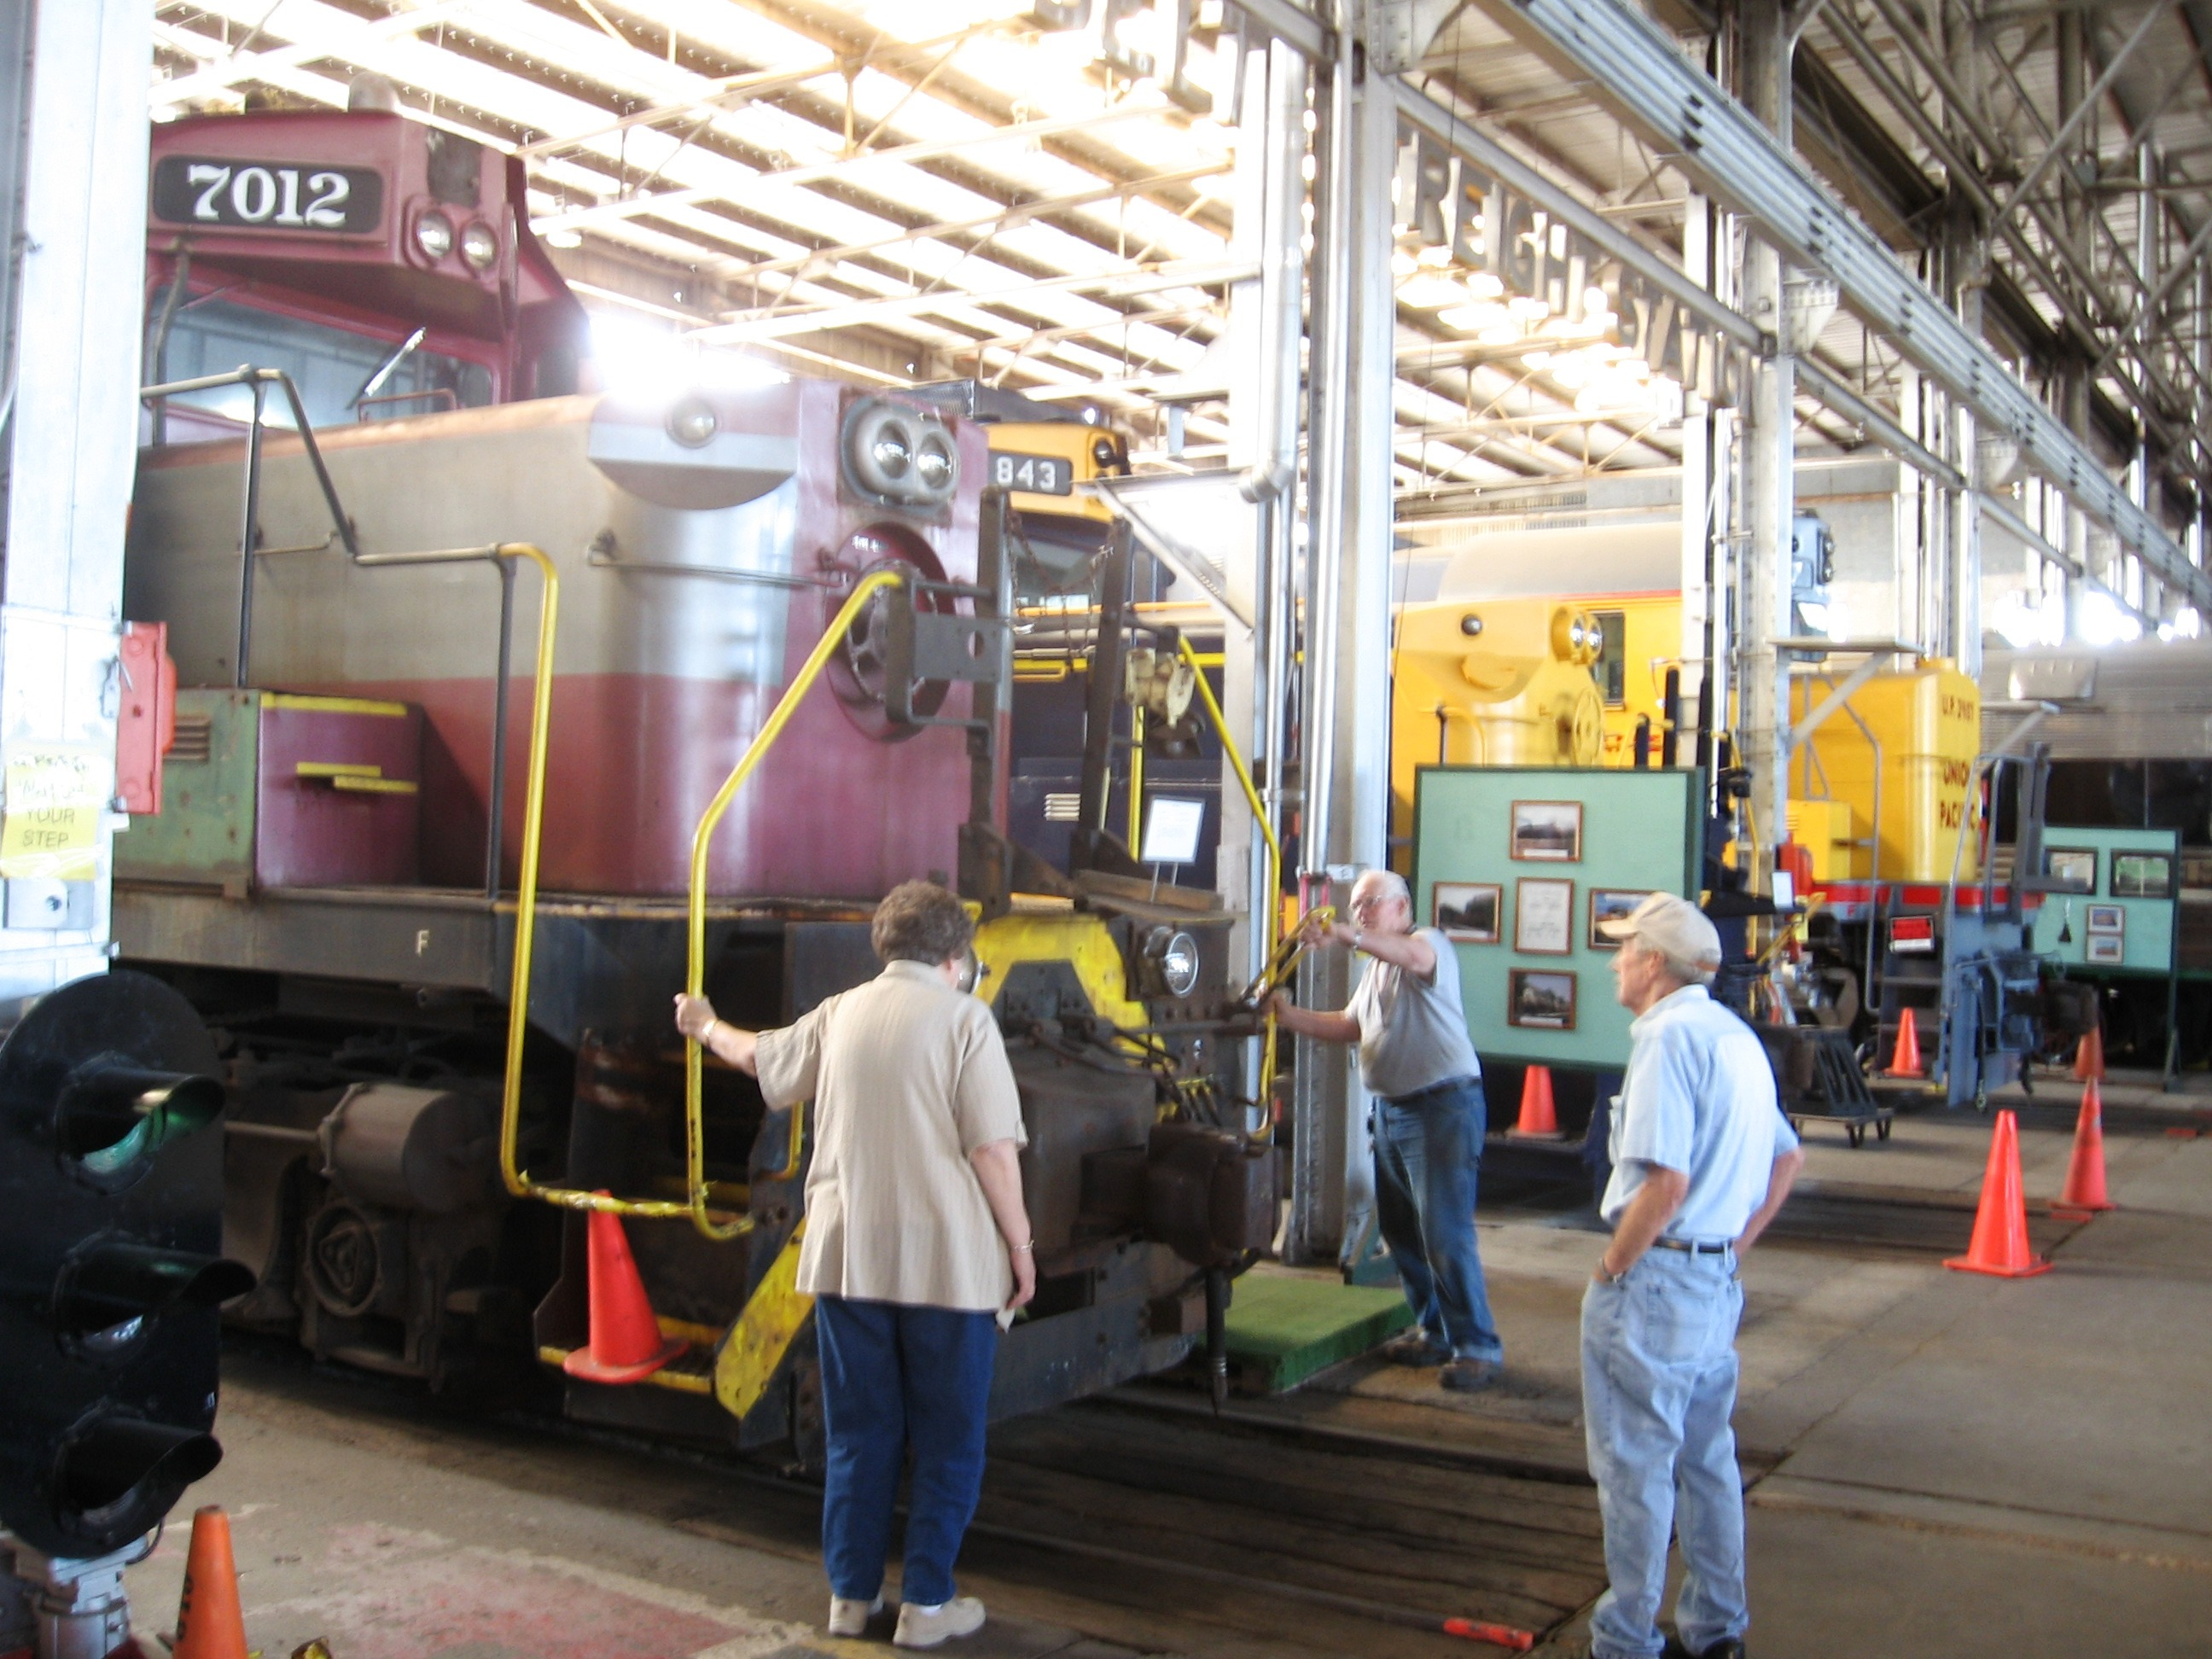 Docent and visitors examining an engine on display at the Rail Road Museum in Pine Bluff, Arkansas